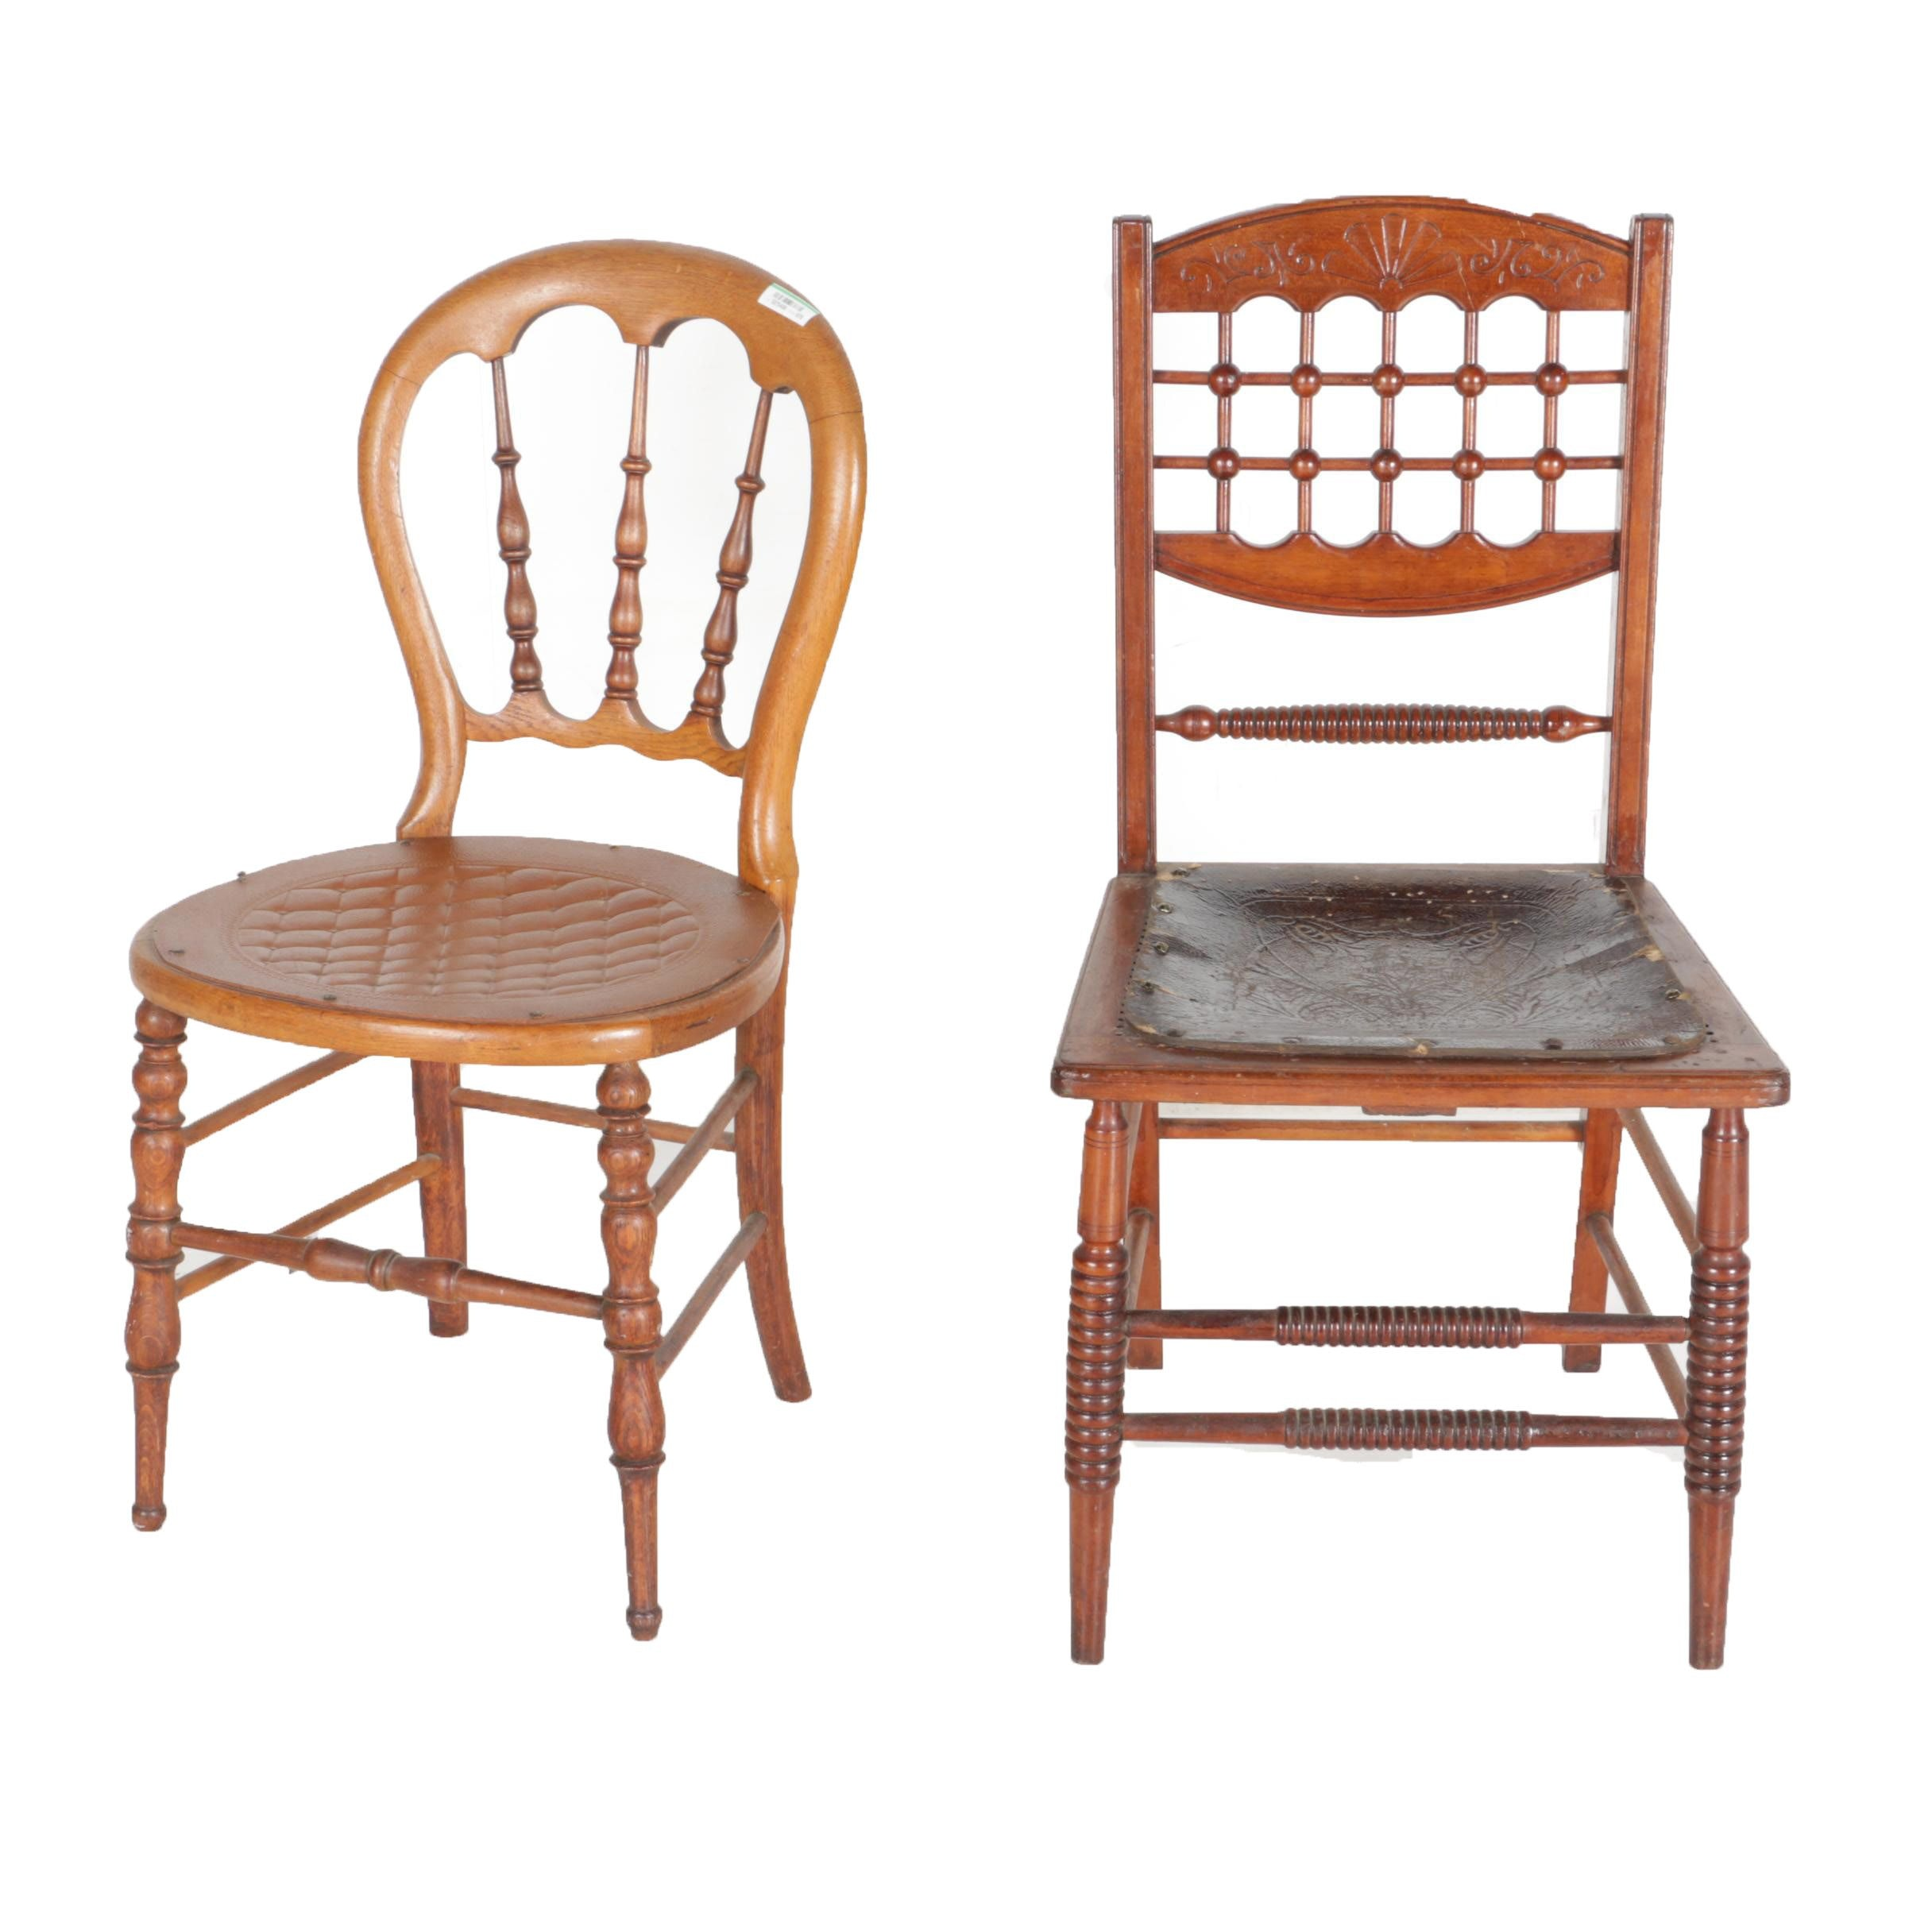 Wooden Cloth Seat Chairs